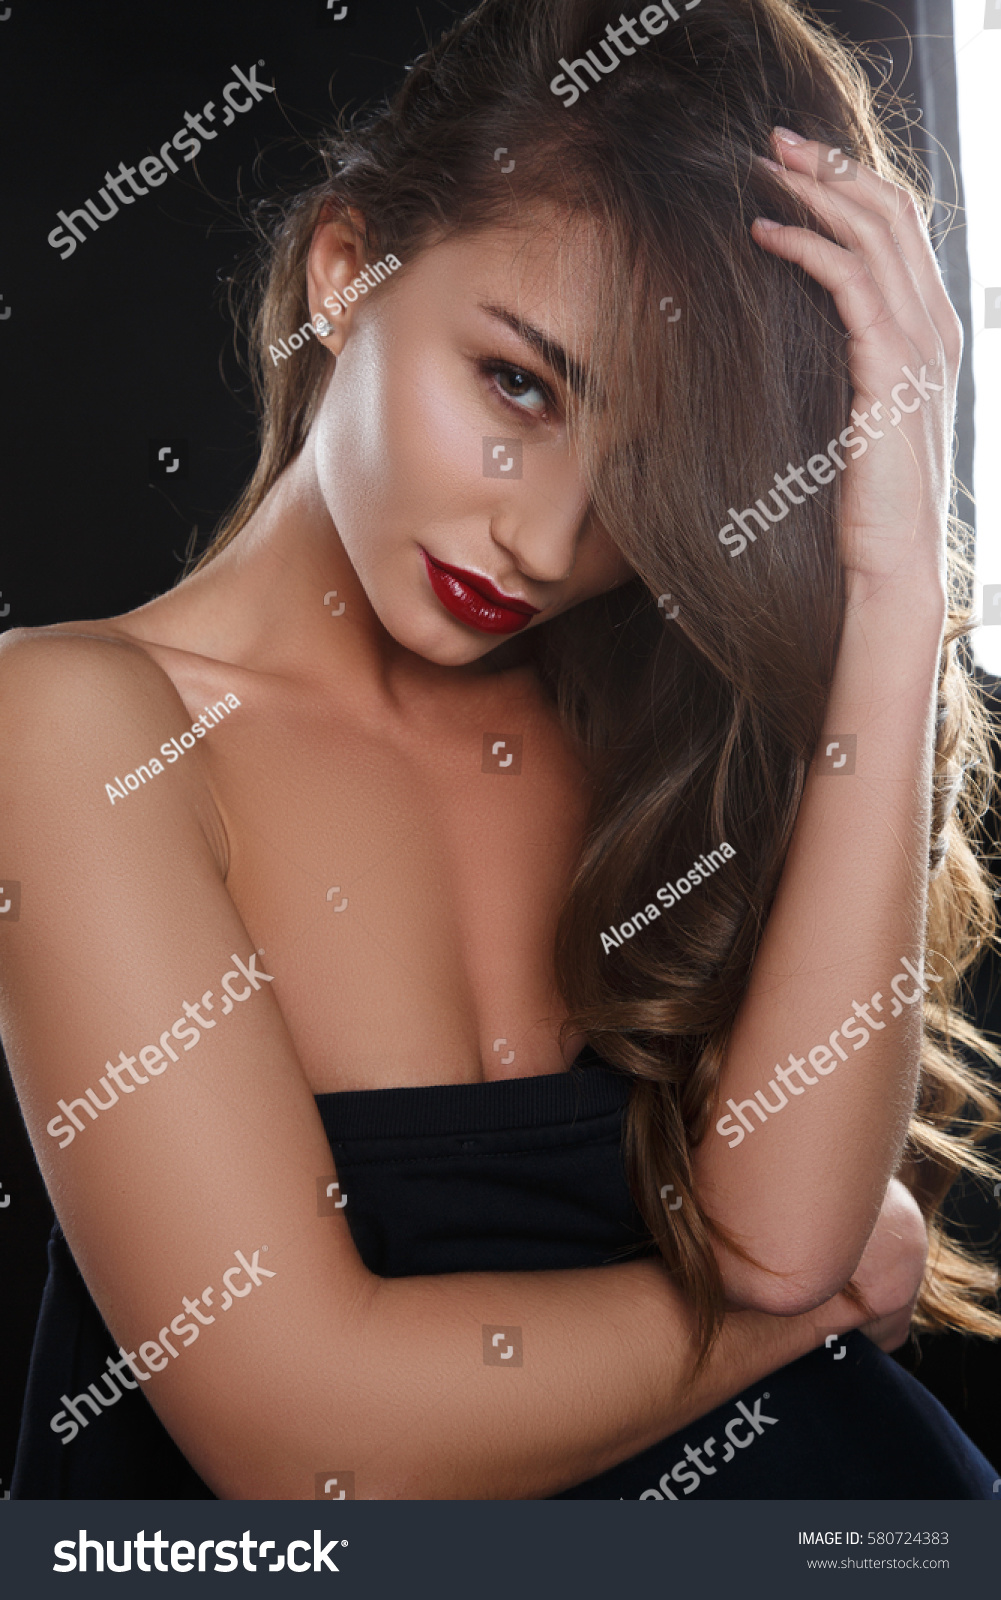 Alona Sexy sexy girl red lipstick stock photo (edit now) 580724383